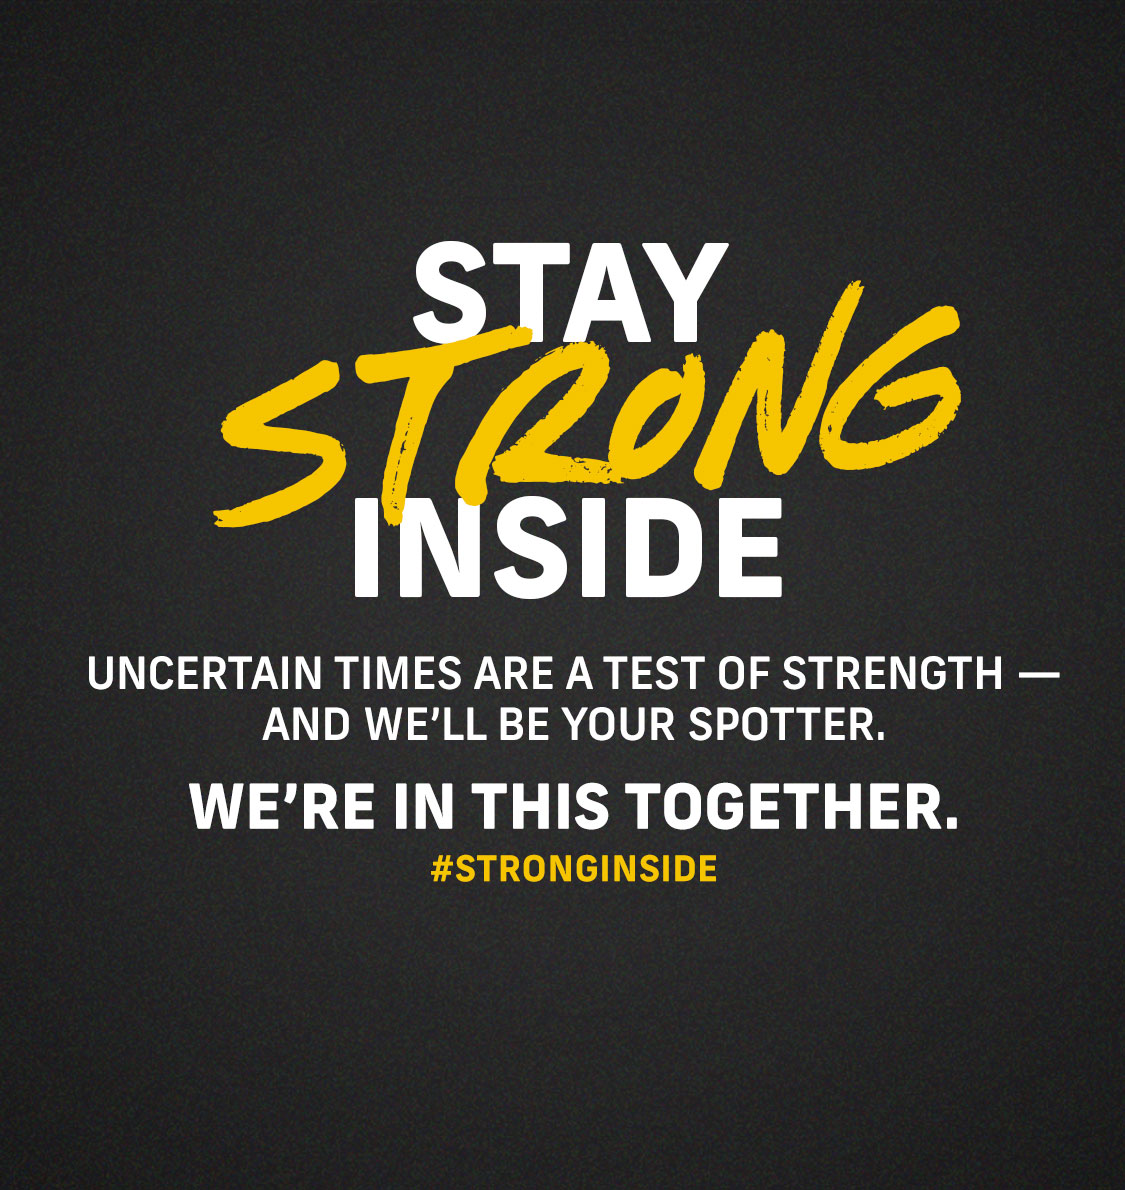 Stay strong inside